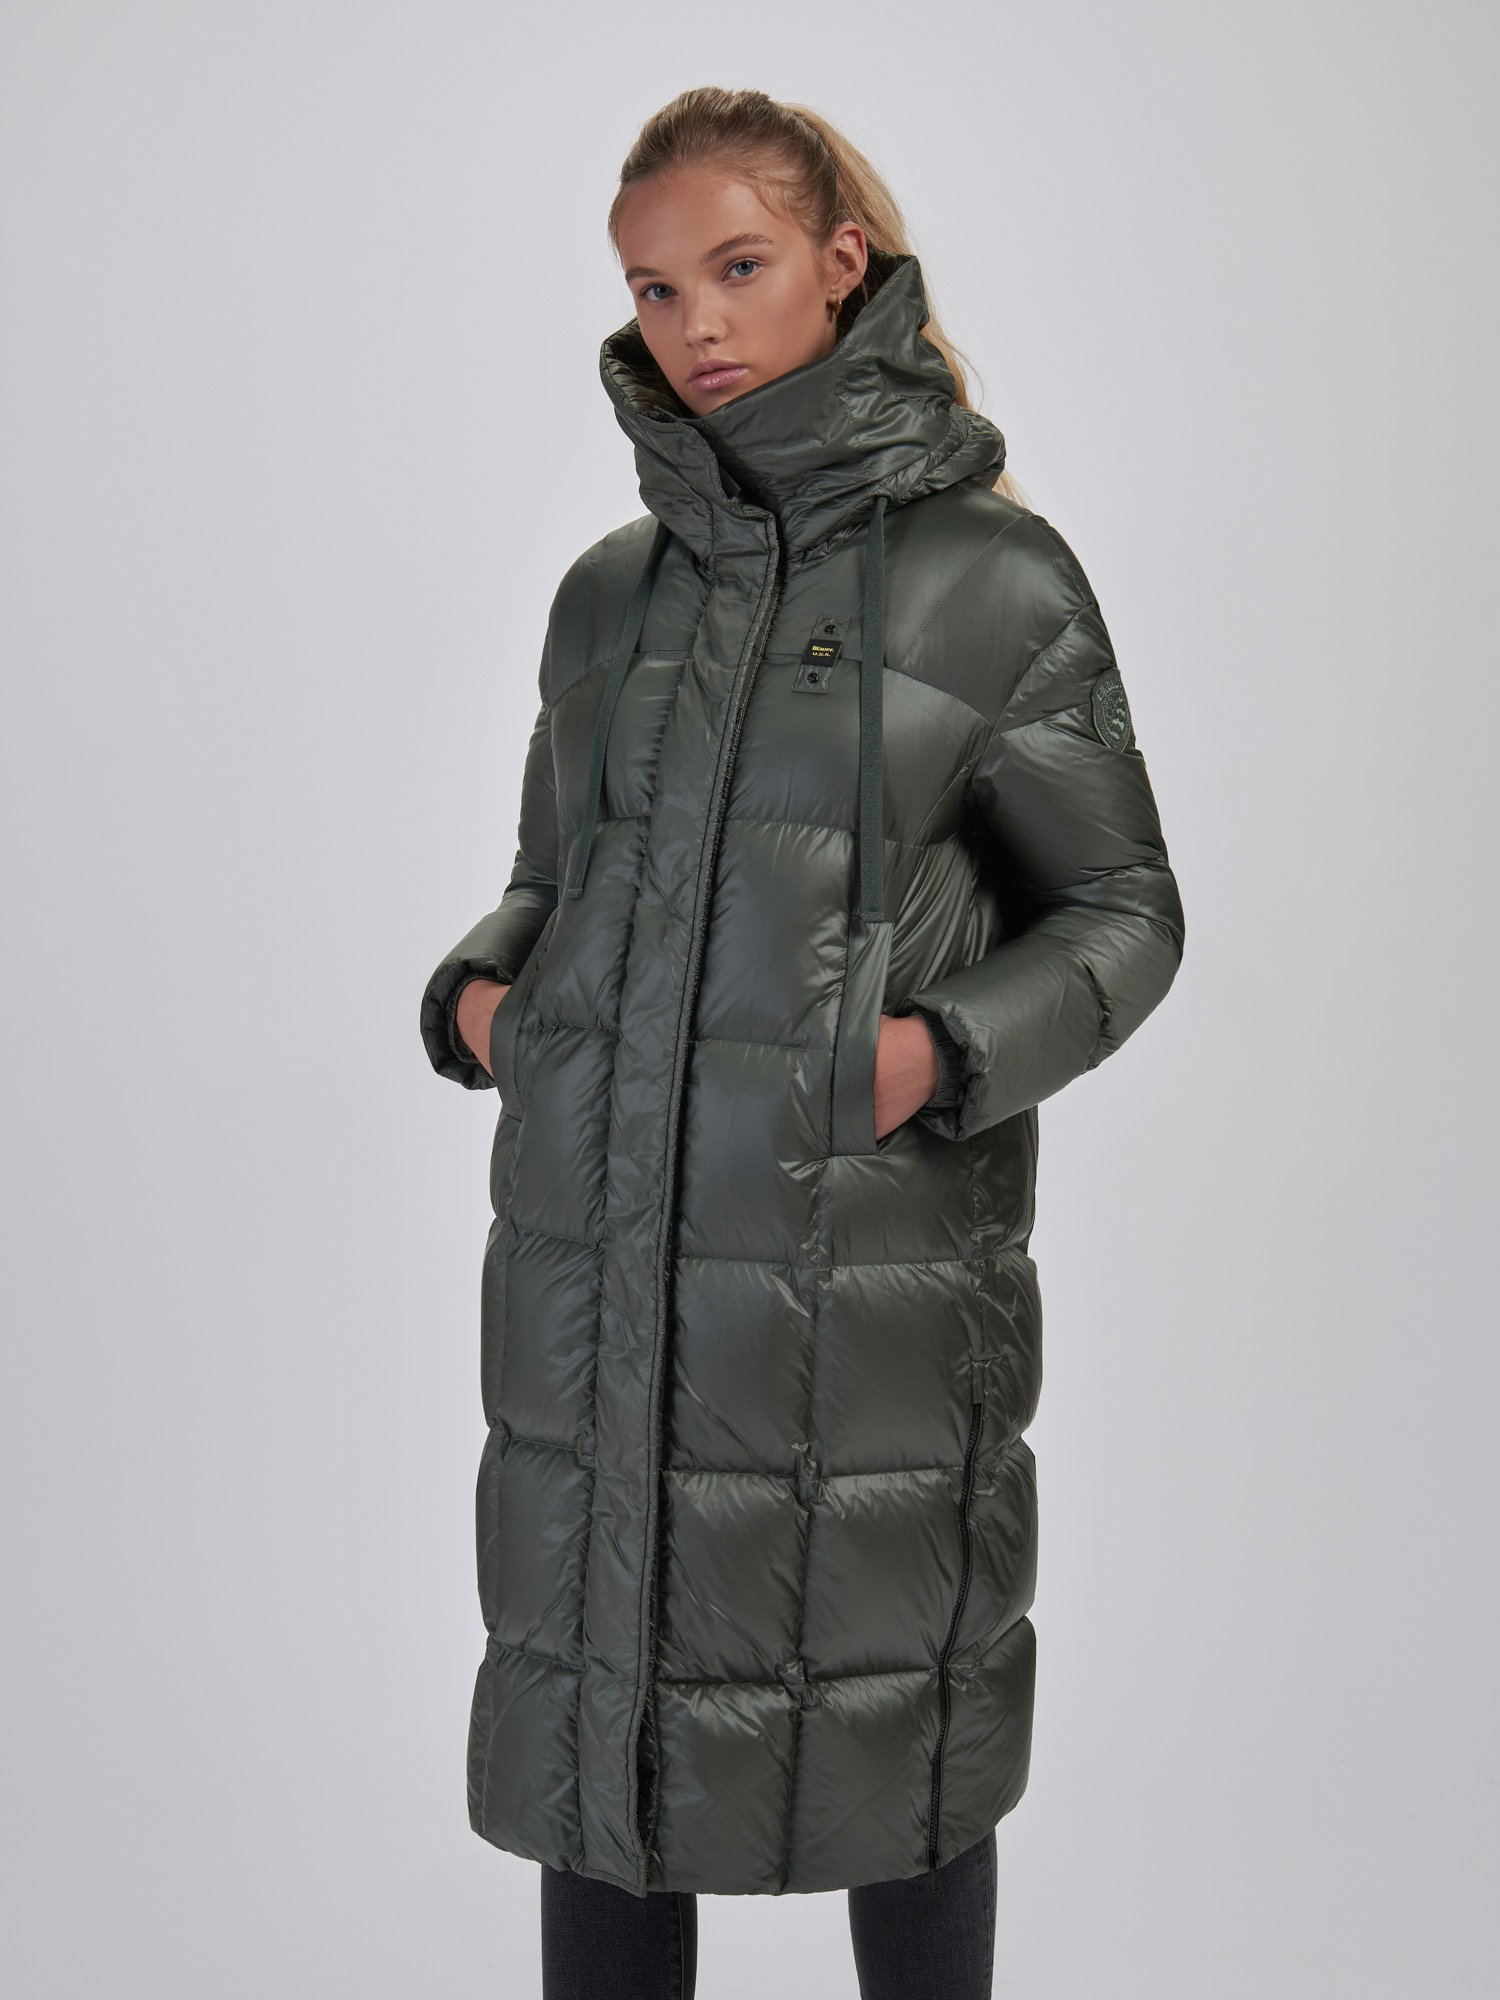 Blauer - MARIE SHINY LONG DOWN JACKET - Wild Linden - Blauer